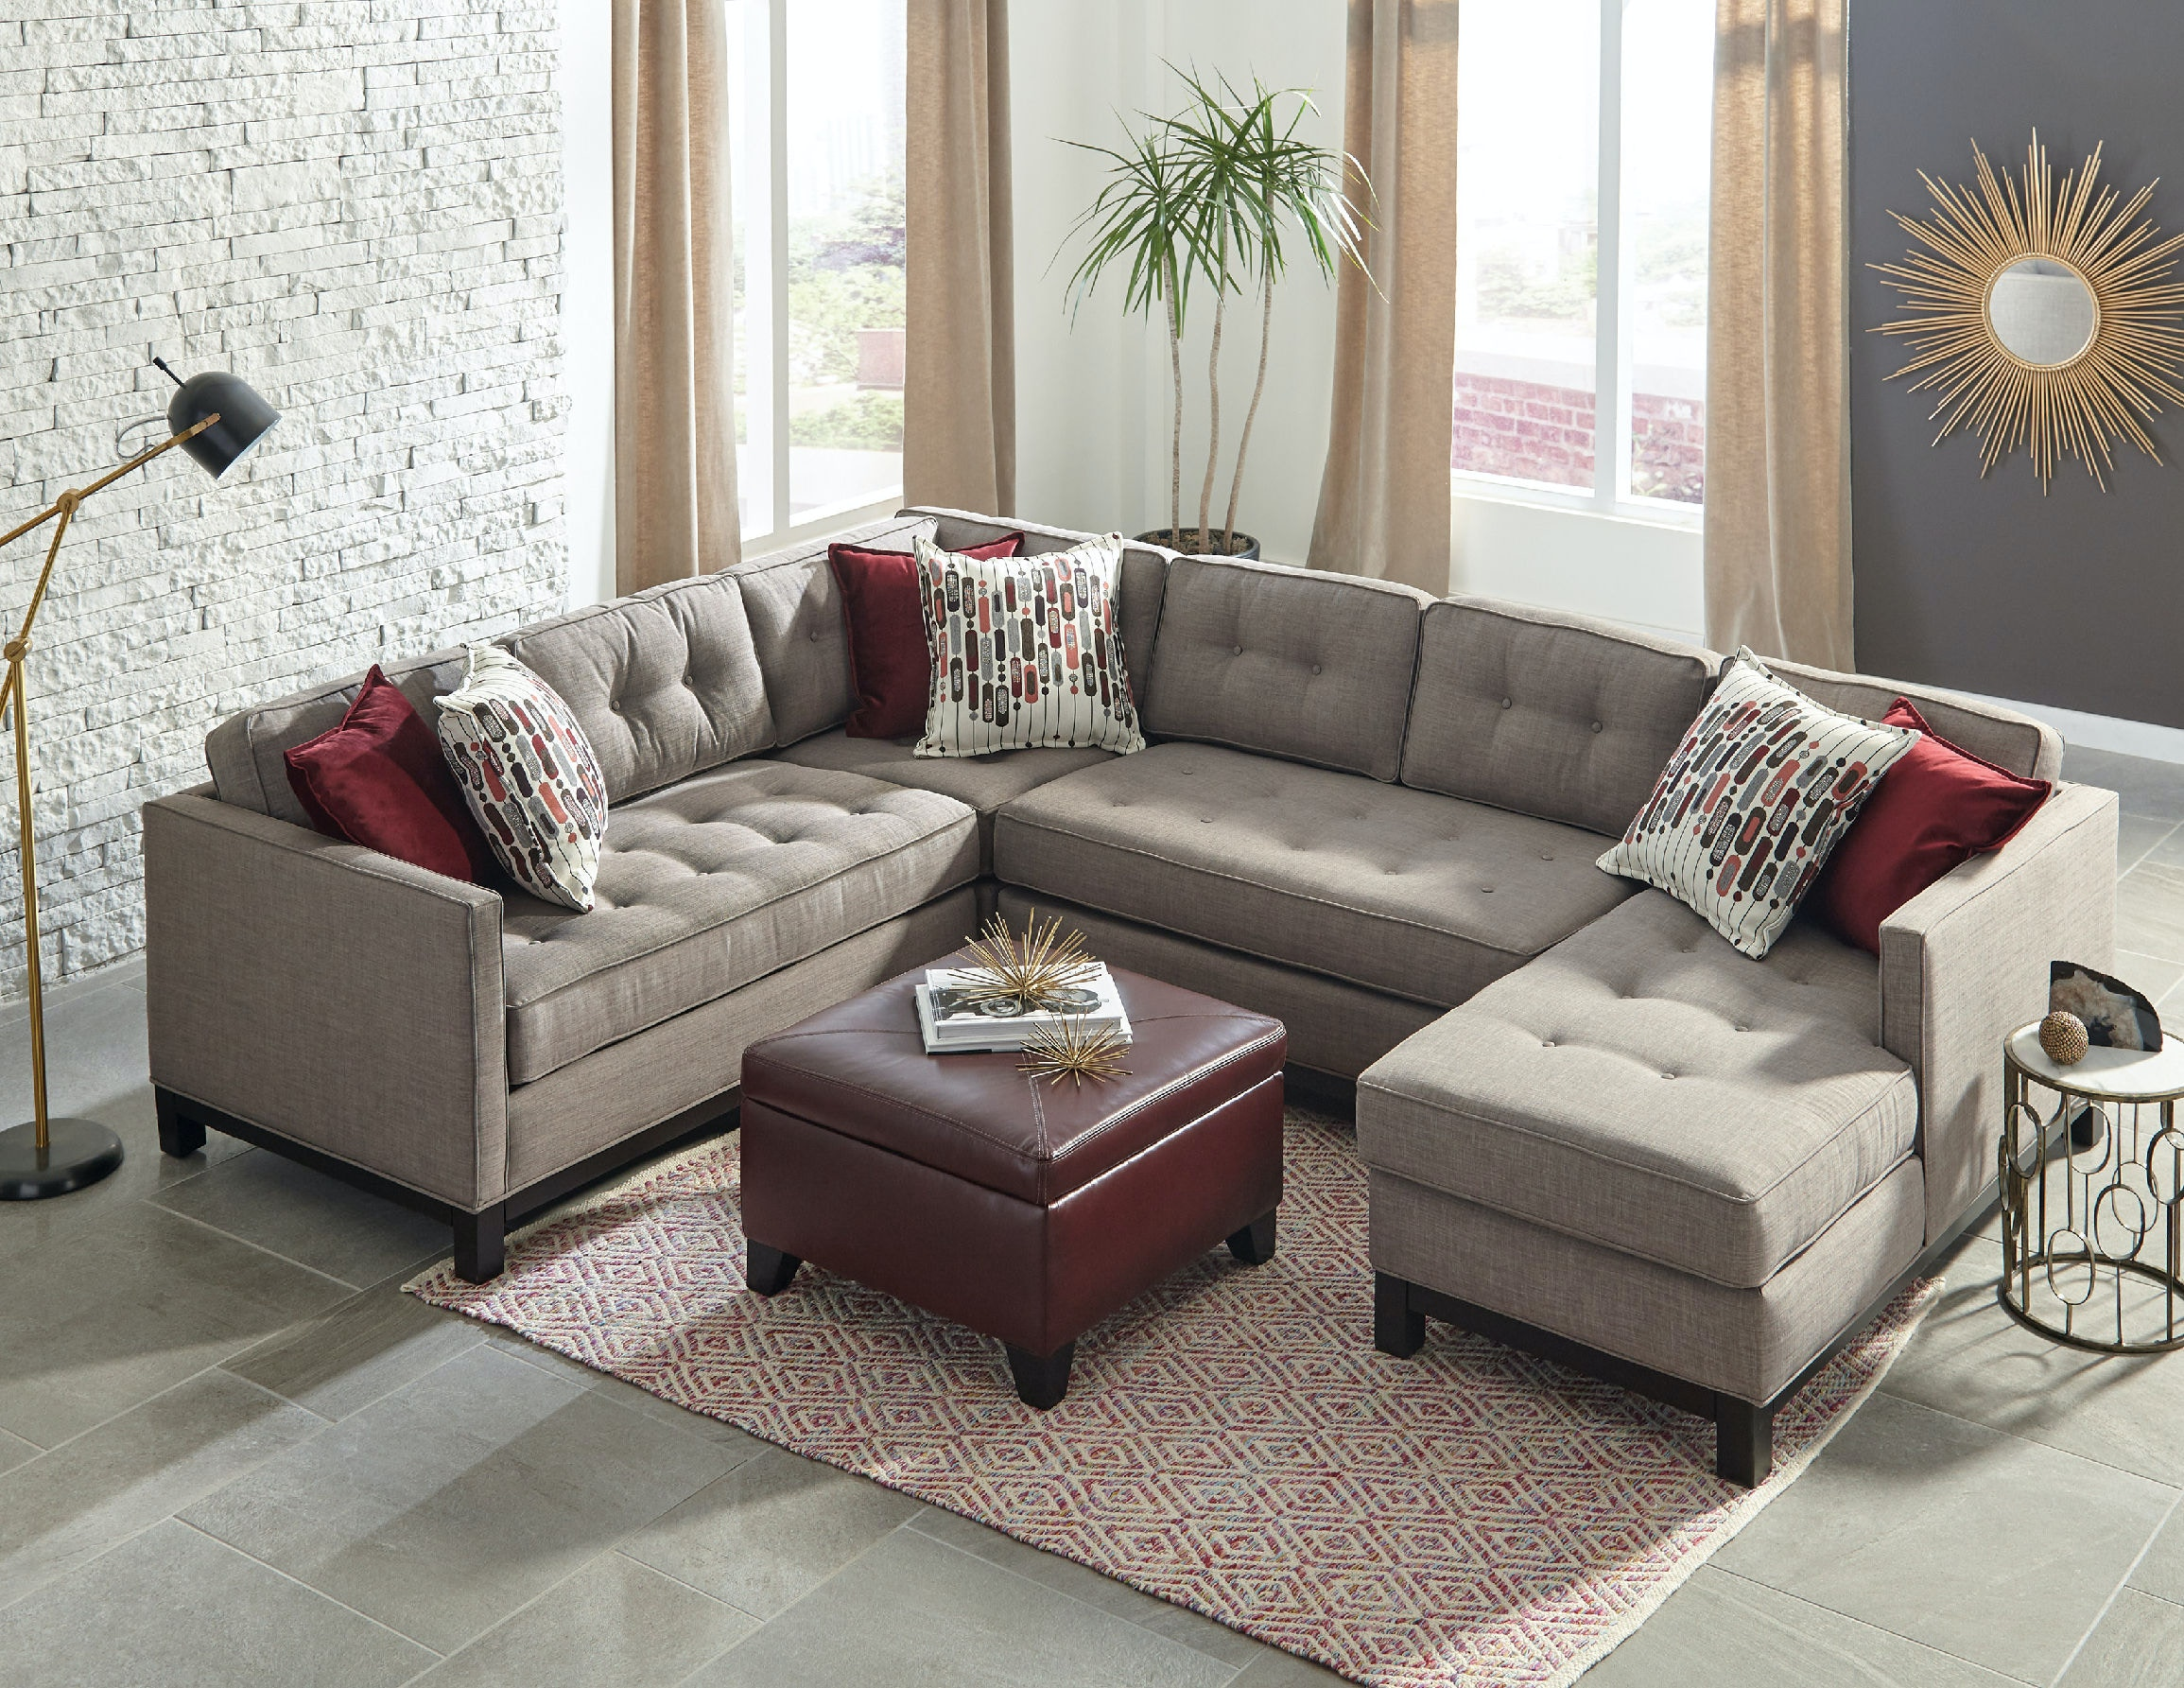 Jonathan Louis International Living Room Goodwyn Sectional 320 Sectional At Klopfenstein  Home Rooms